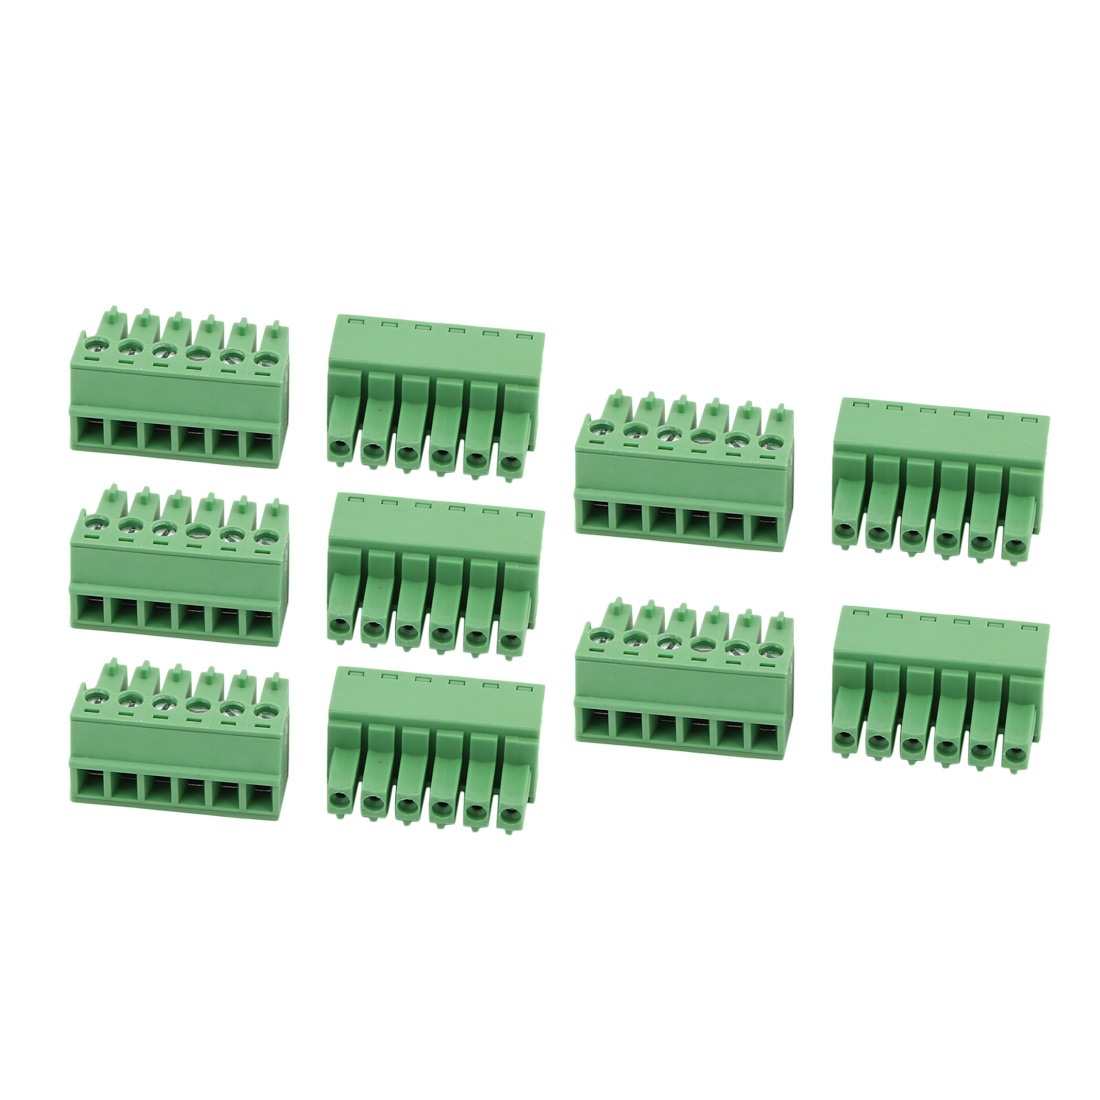 10Pcs AC300V 8A 3.81mm Pitch 6P Terminal Block Wire Connection for PCB Mounting